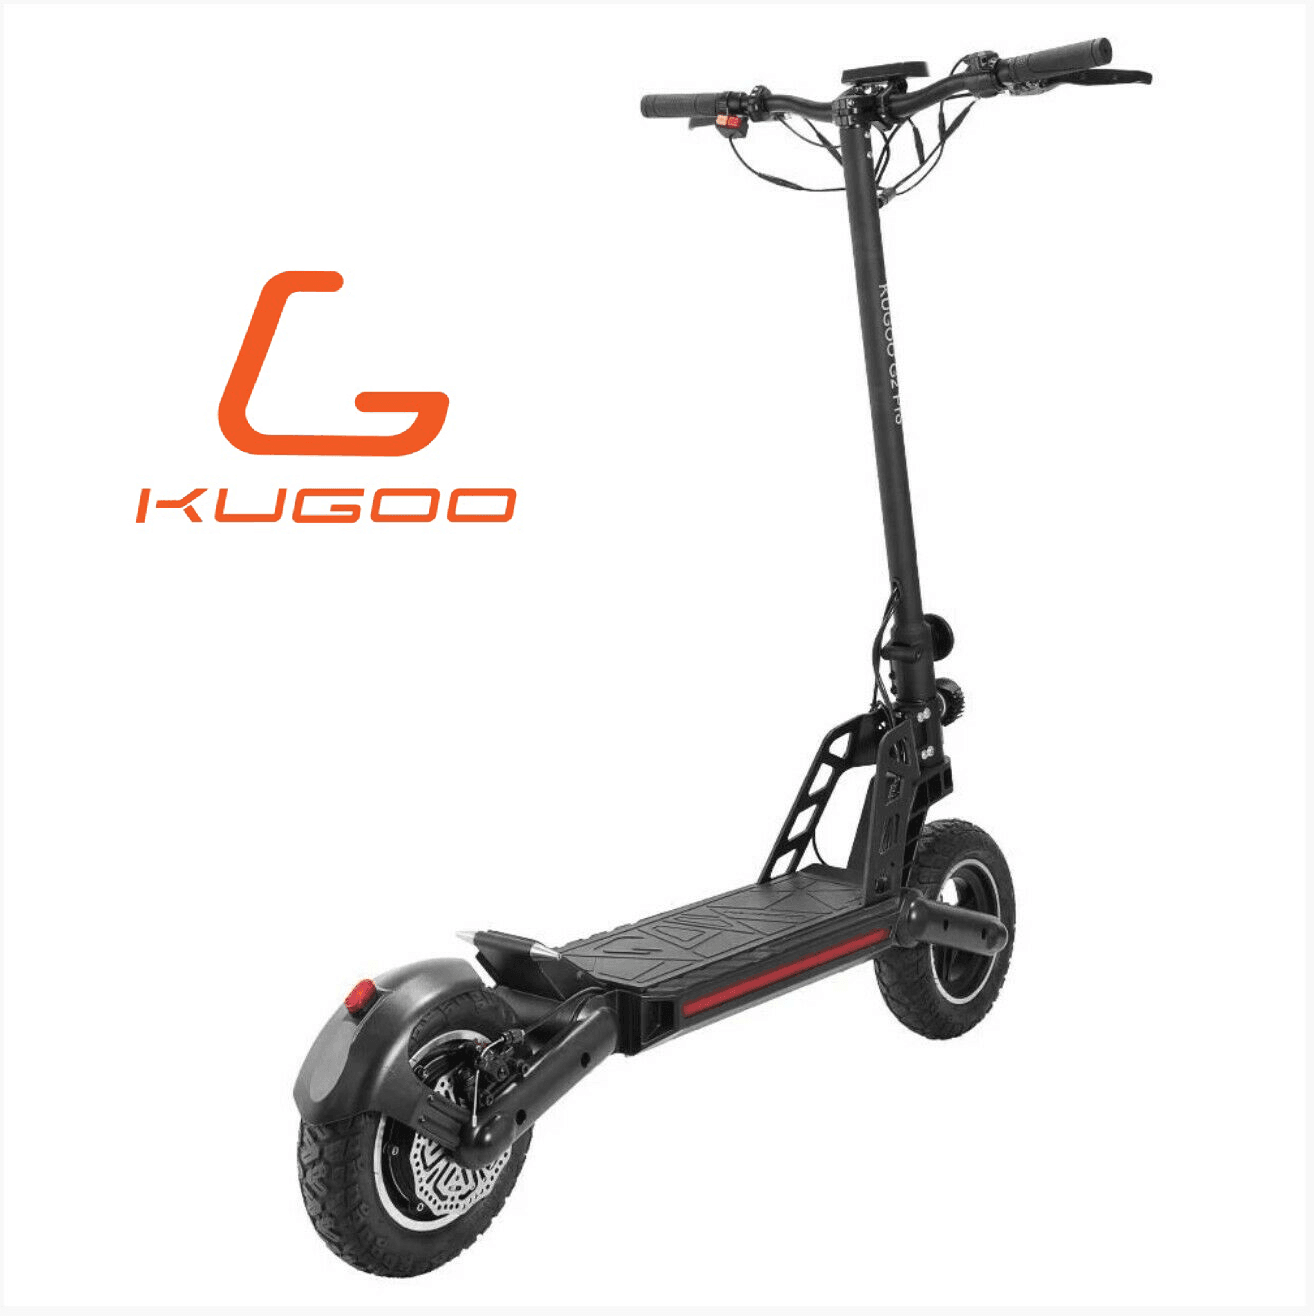 Kugoo G2 Pro Electric Scooter Klarna pay later